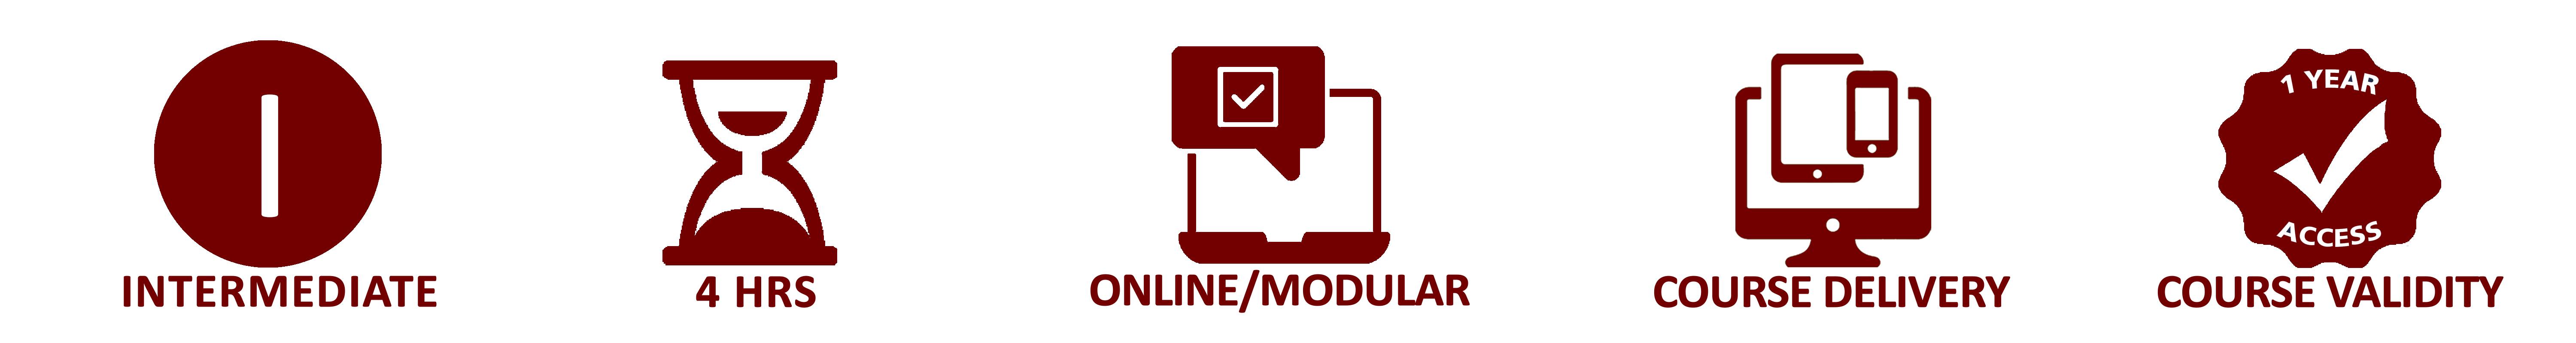 Prepare to Deliver Excellent Customer Service - E-Learning Courses-Mandatory Compliance UK -